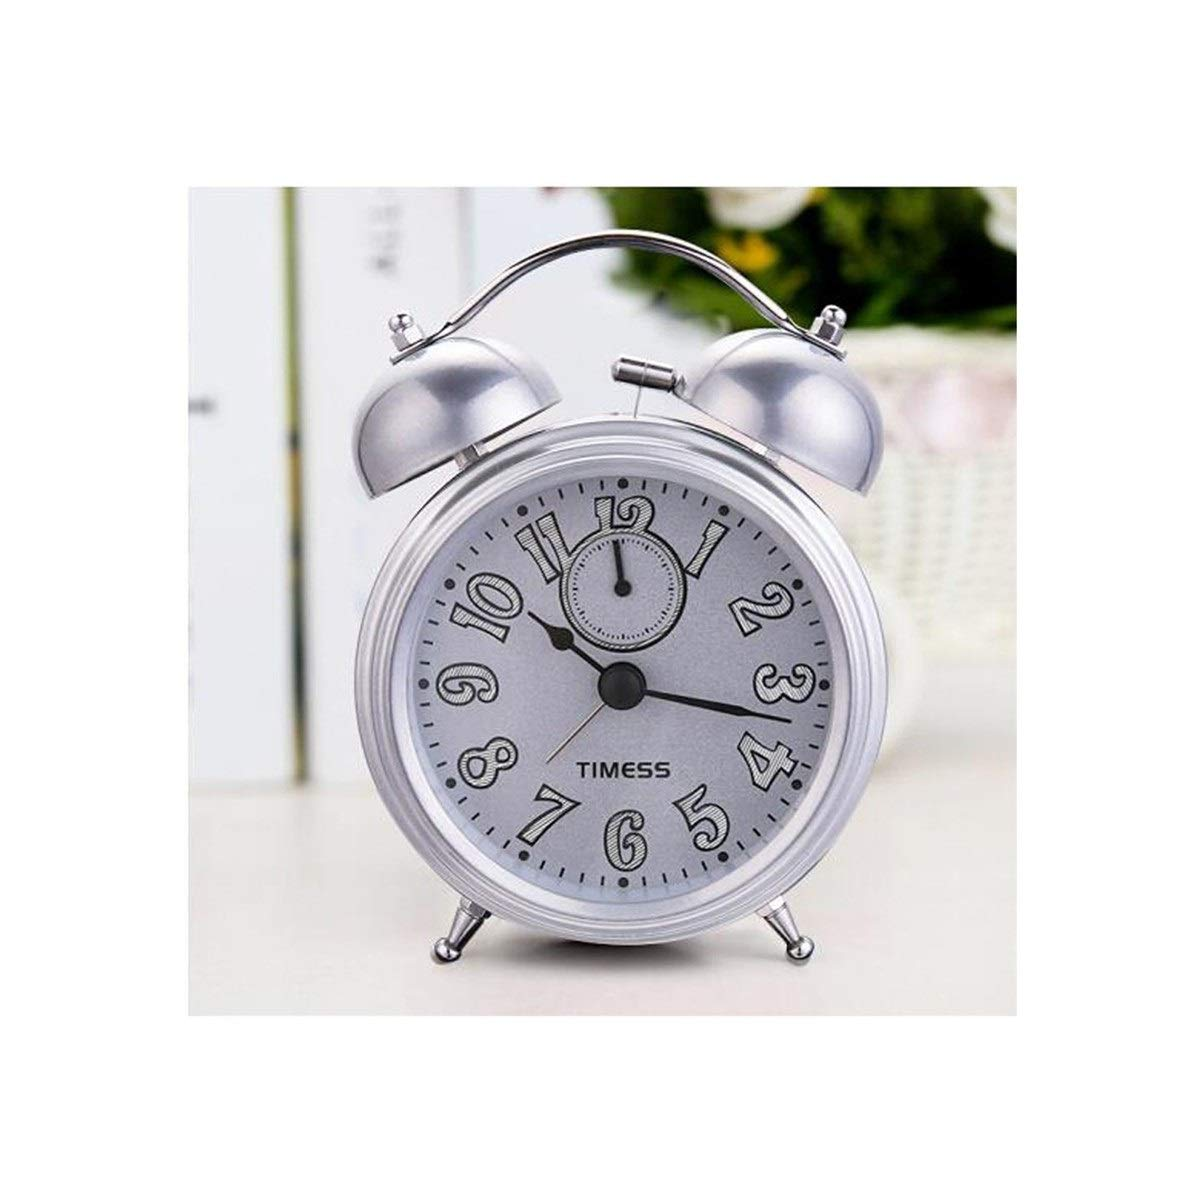 Chenjinxiang01 Alarm Clock, Stylish Silent Student Bedside Clock, Creative Metal Bell Night Light Alarm Table, Silver, ( color   Silver )